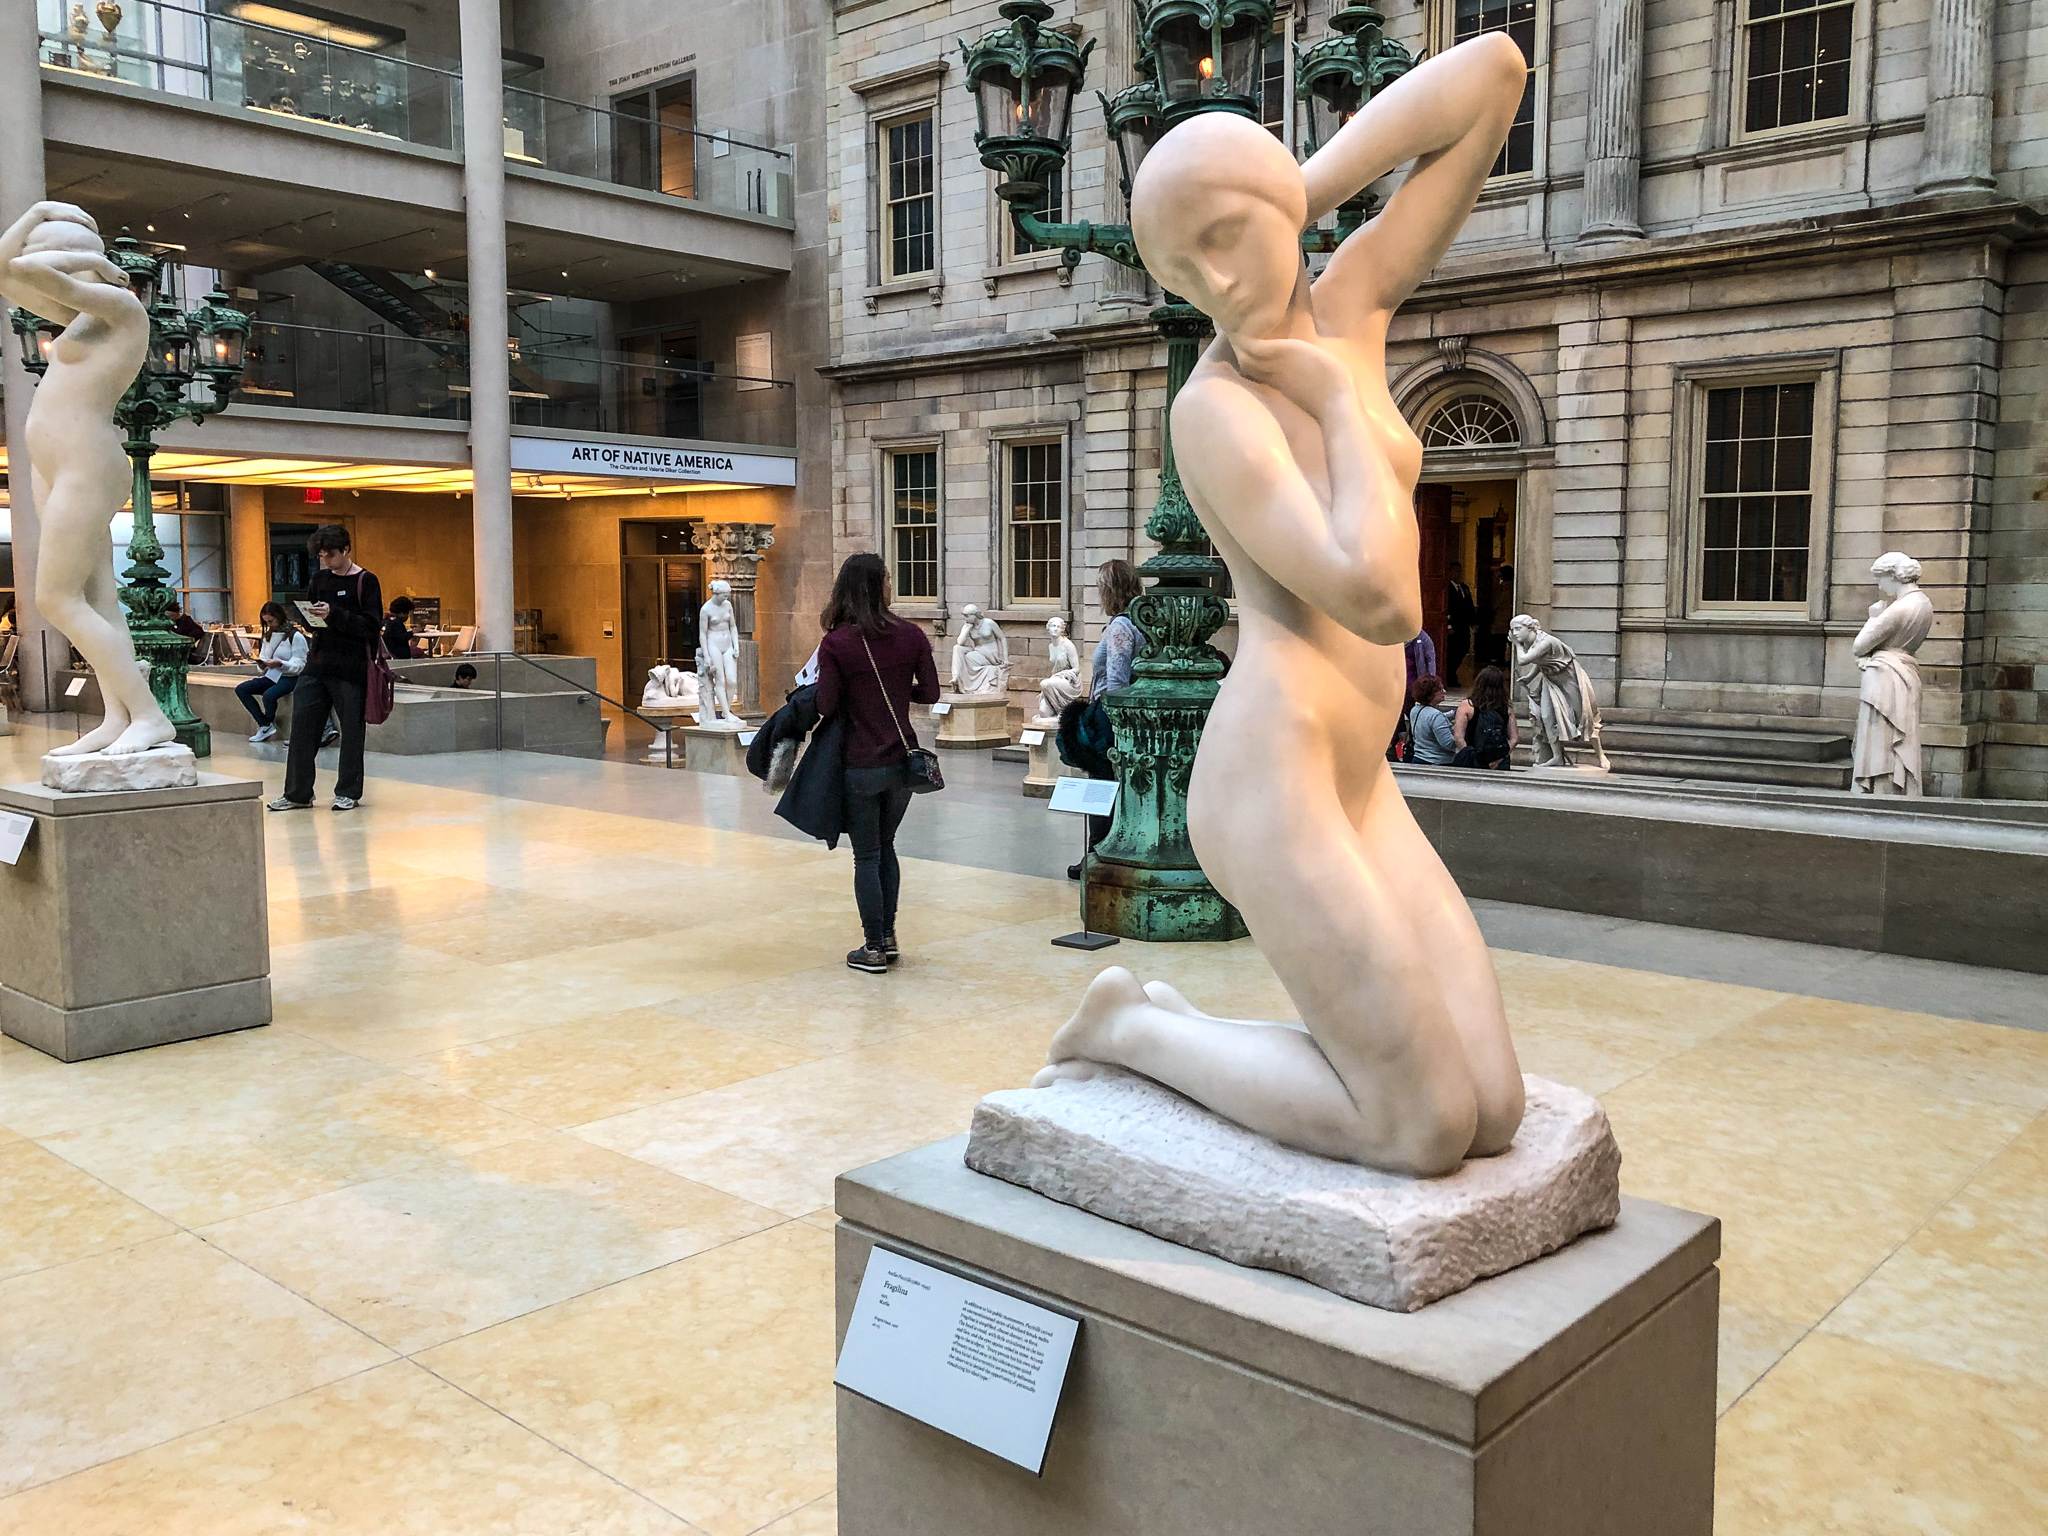 visiting the metropolitan museum of art means lots of statues